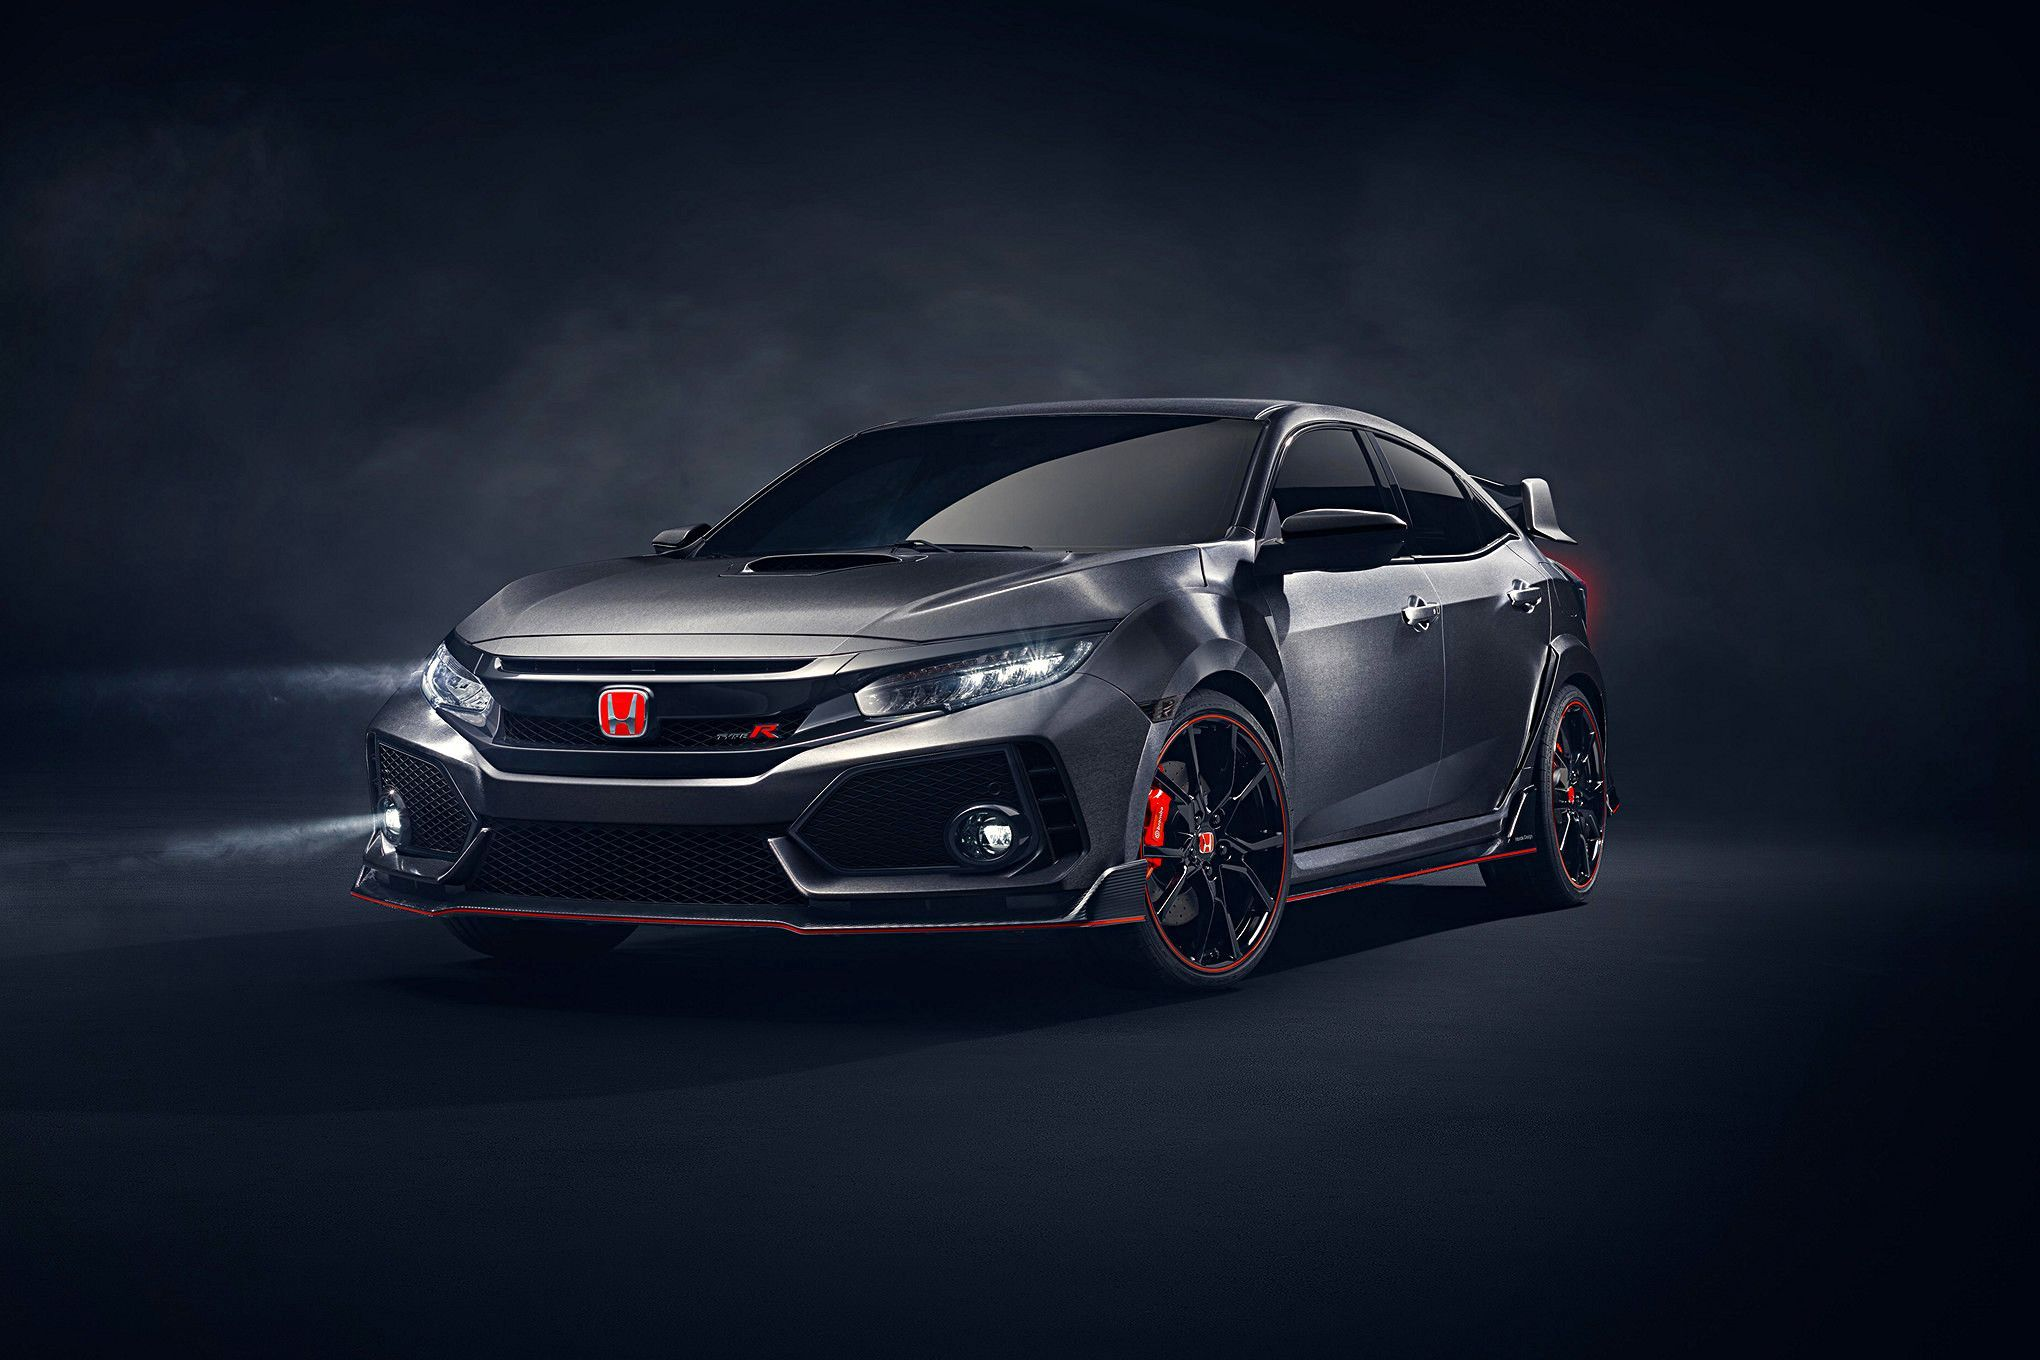 2018 honda civic type r front quarter type r uk. Black Bedroom Furniture Sets. Home Design Ideas